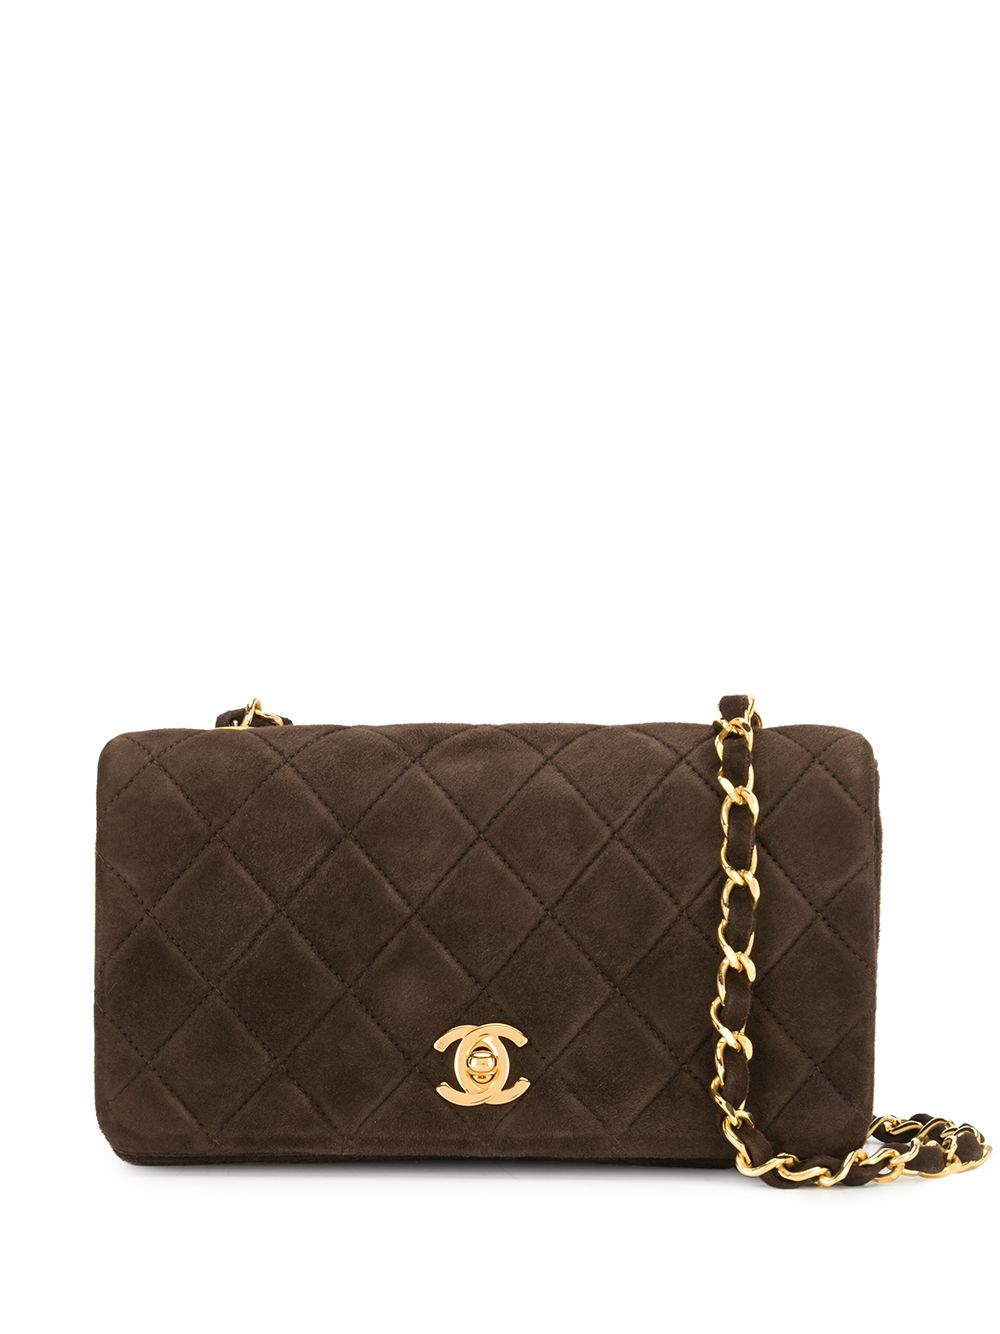 Chanel Pre-Owned 1990s diamond-quilted flap shoulder bag - Brown